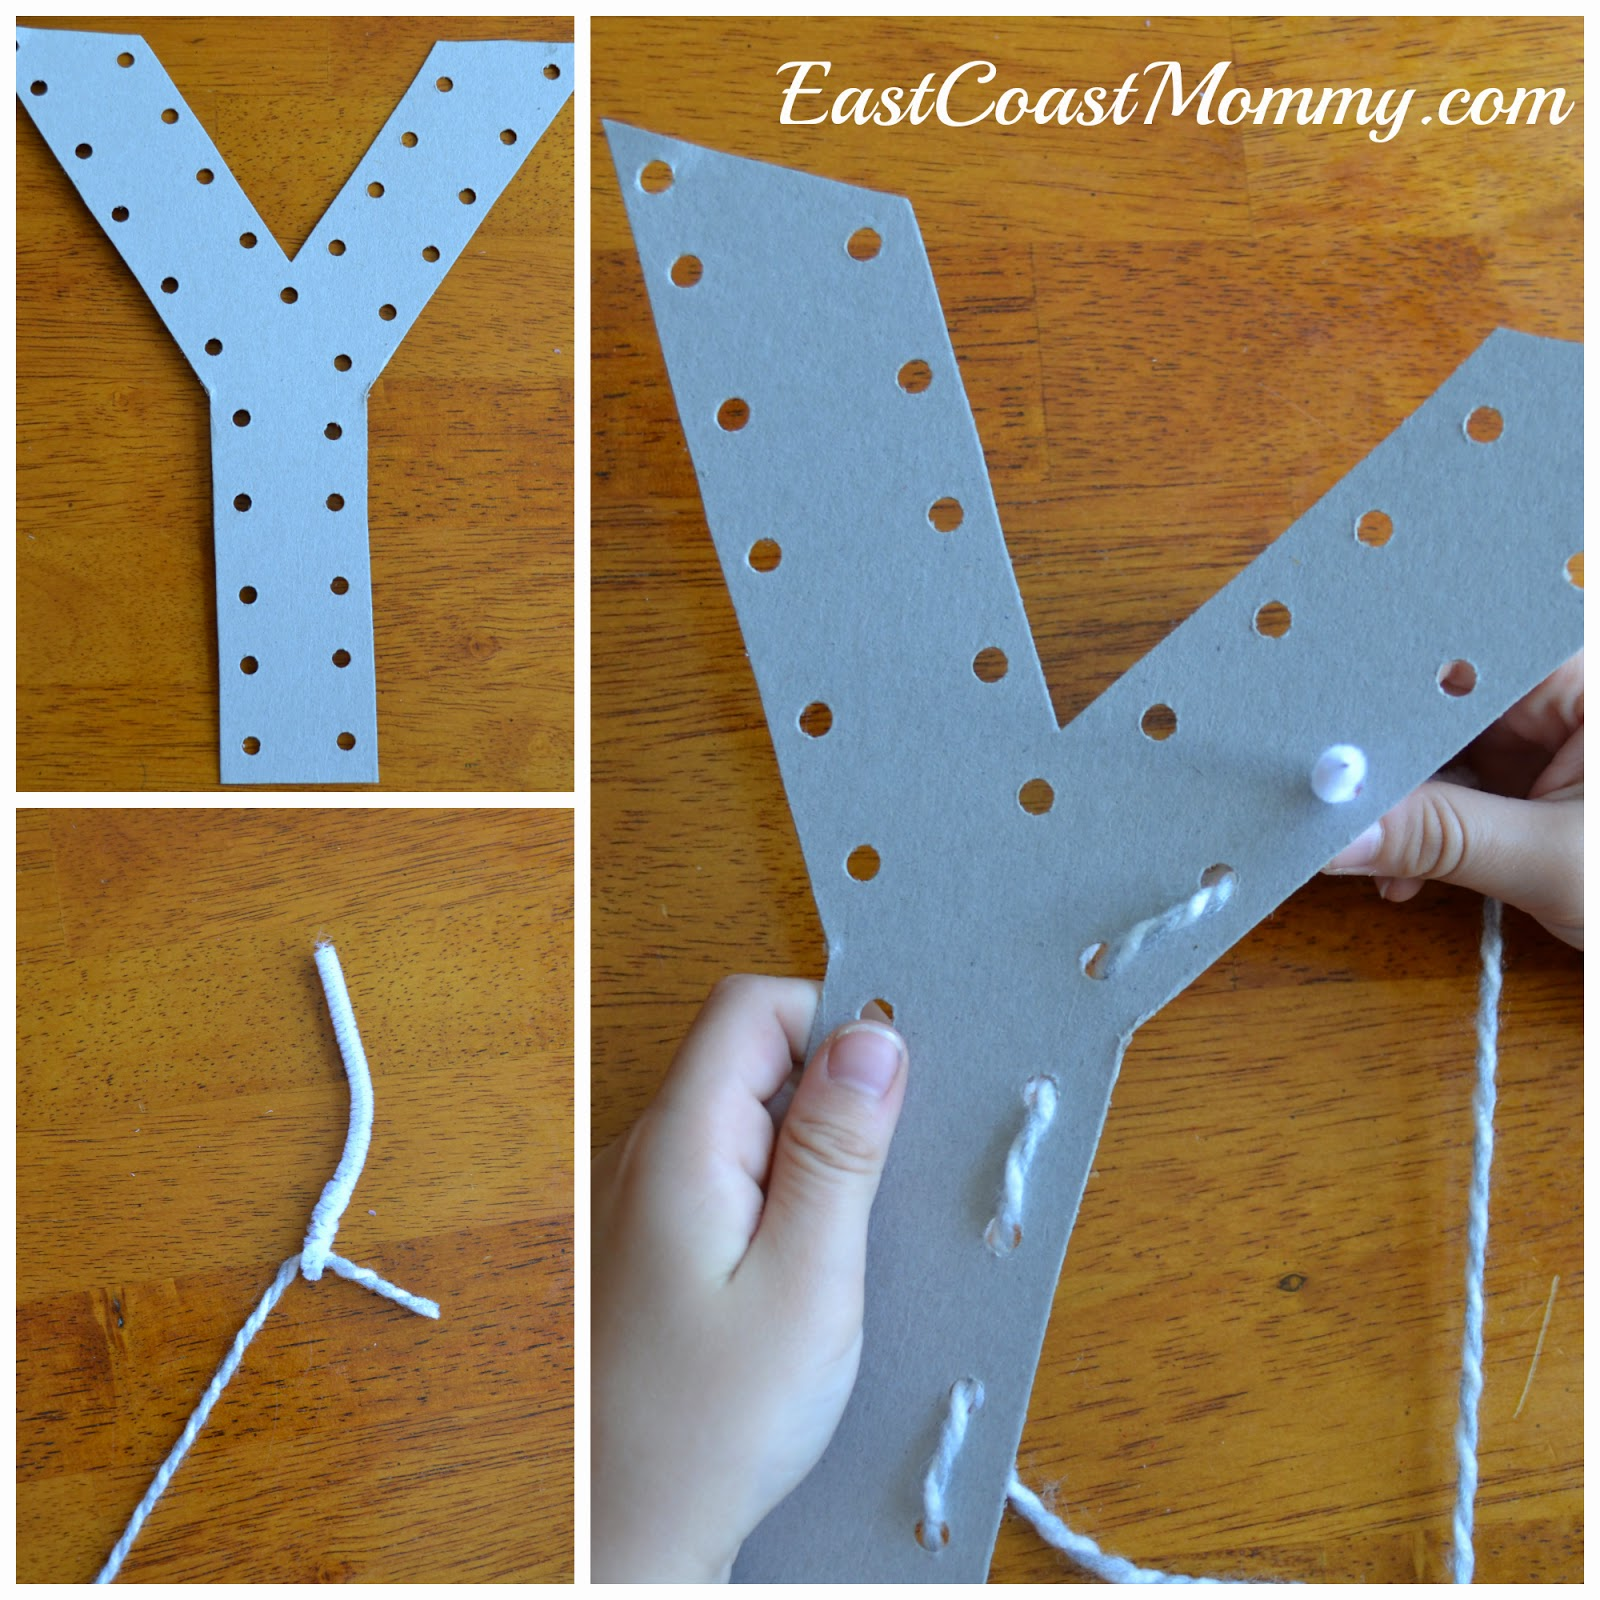 Letter Y Crafts East coast mommy: alphabet crafts - letter y